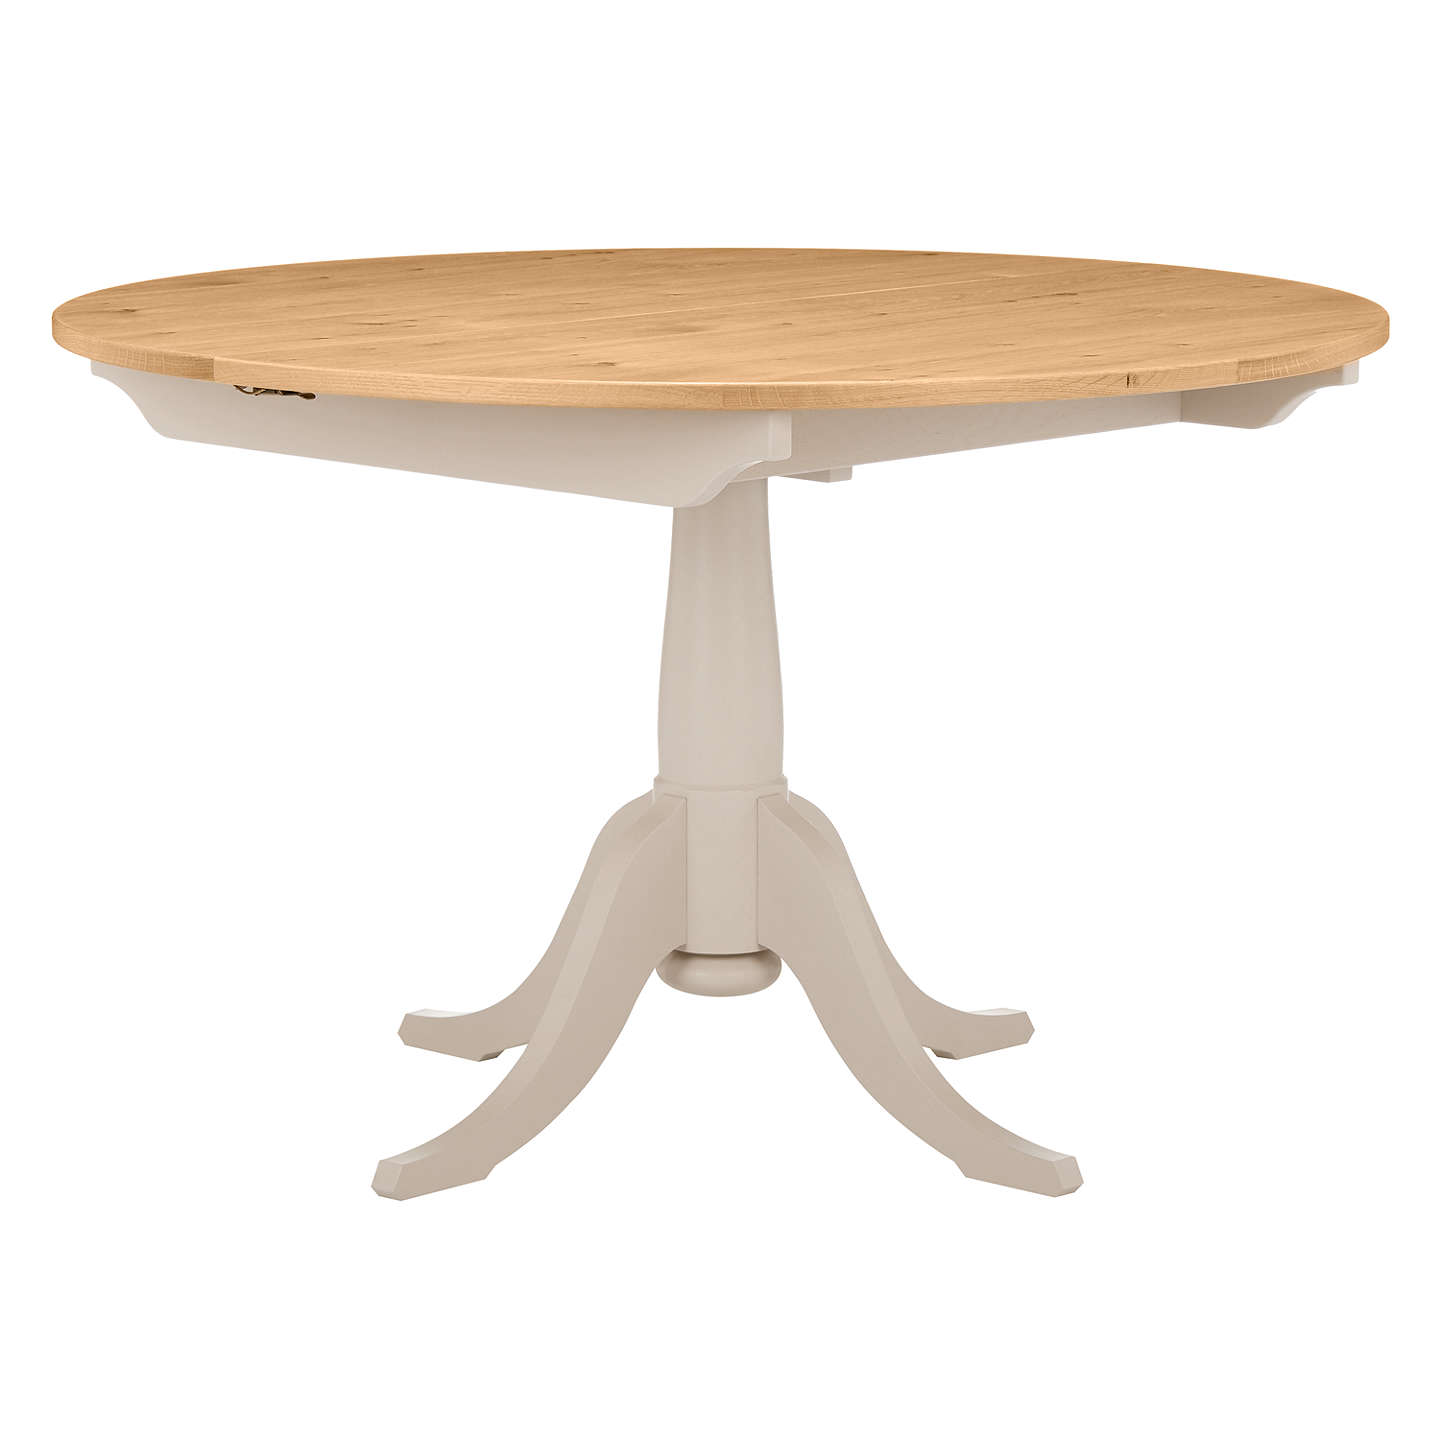 John Lewis Audley Round 4-6 Seater Extending Dining Table